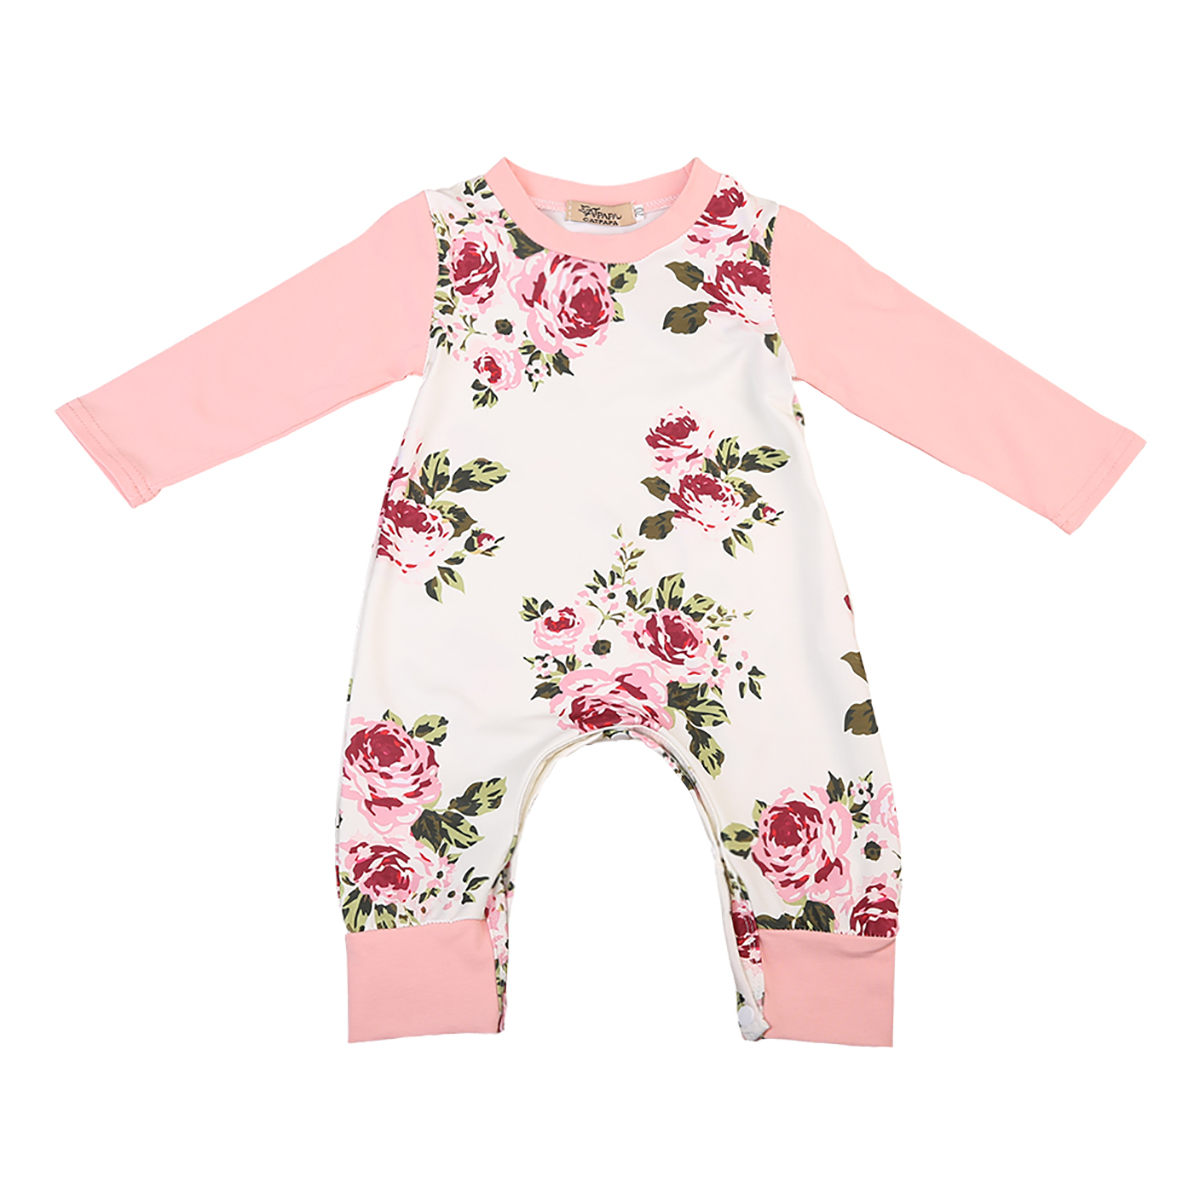 Pudcoco Toddler Kids Baby Girls Romper Floral Long sleeve Jumpsuit Cotton Cute Playsuit Clothes Outfits 0-24M